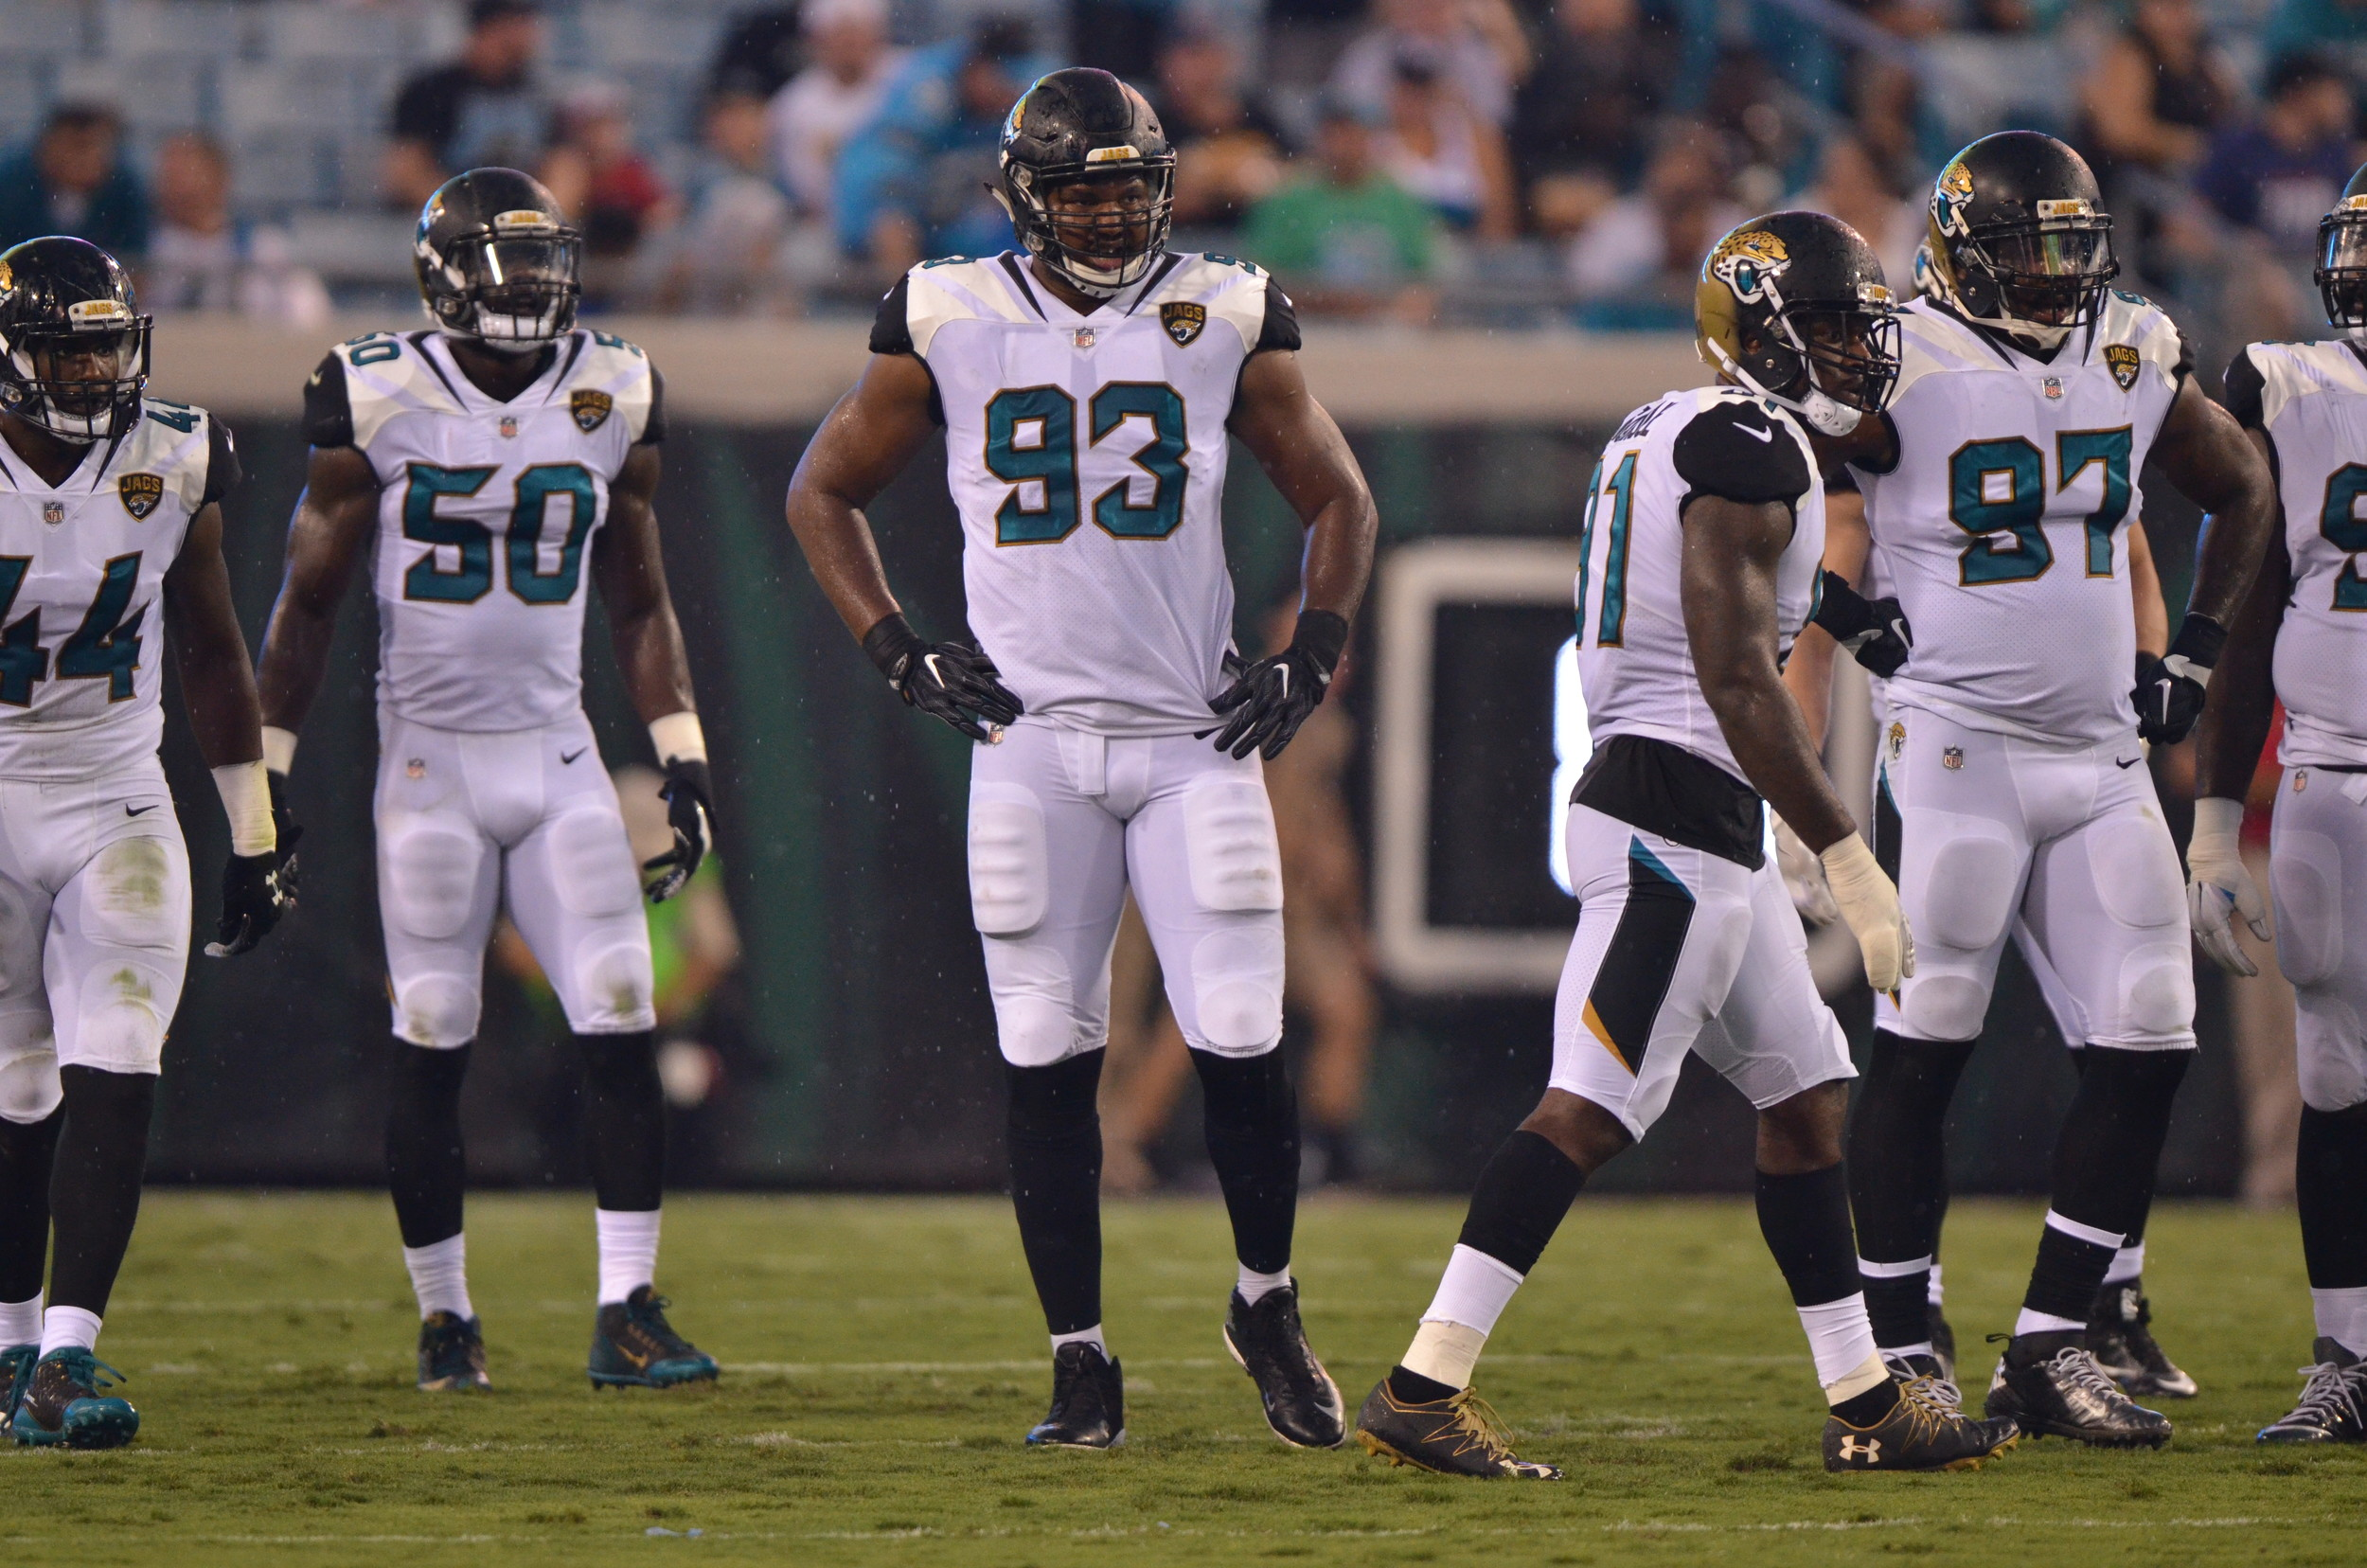 """We got to do better starting as a defense,"" said Jaguars defensive lineman Calais Campbell (93) following Jacksonville's 24-23 preseason loss to the Carolina Panthers."